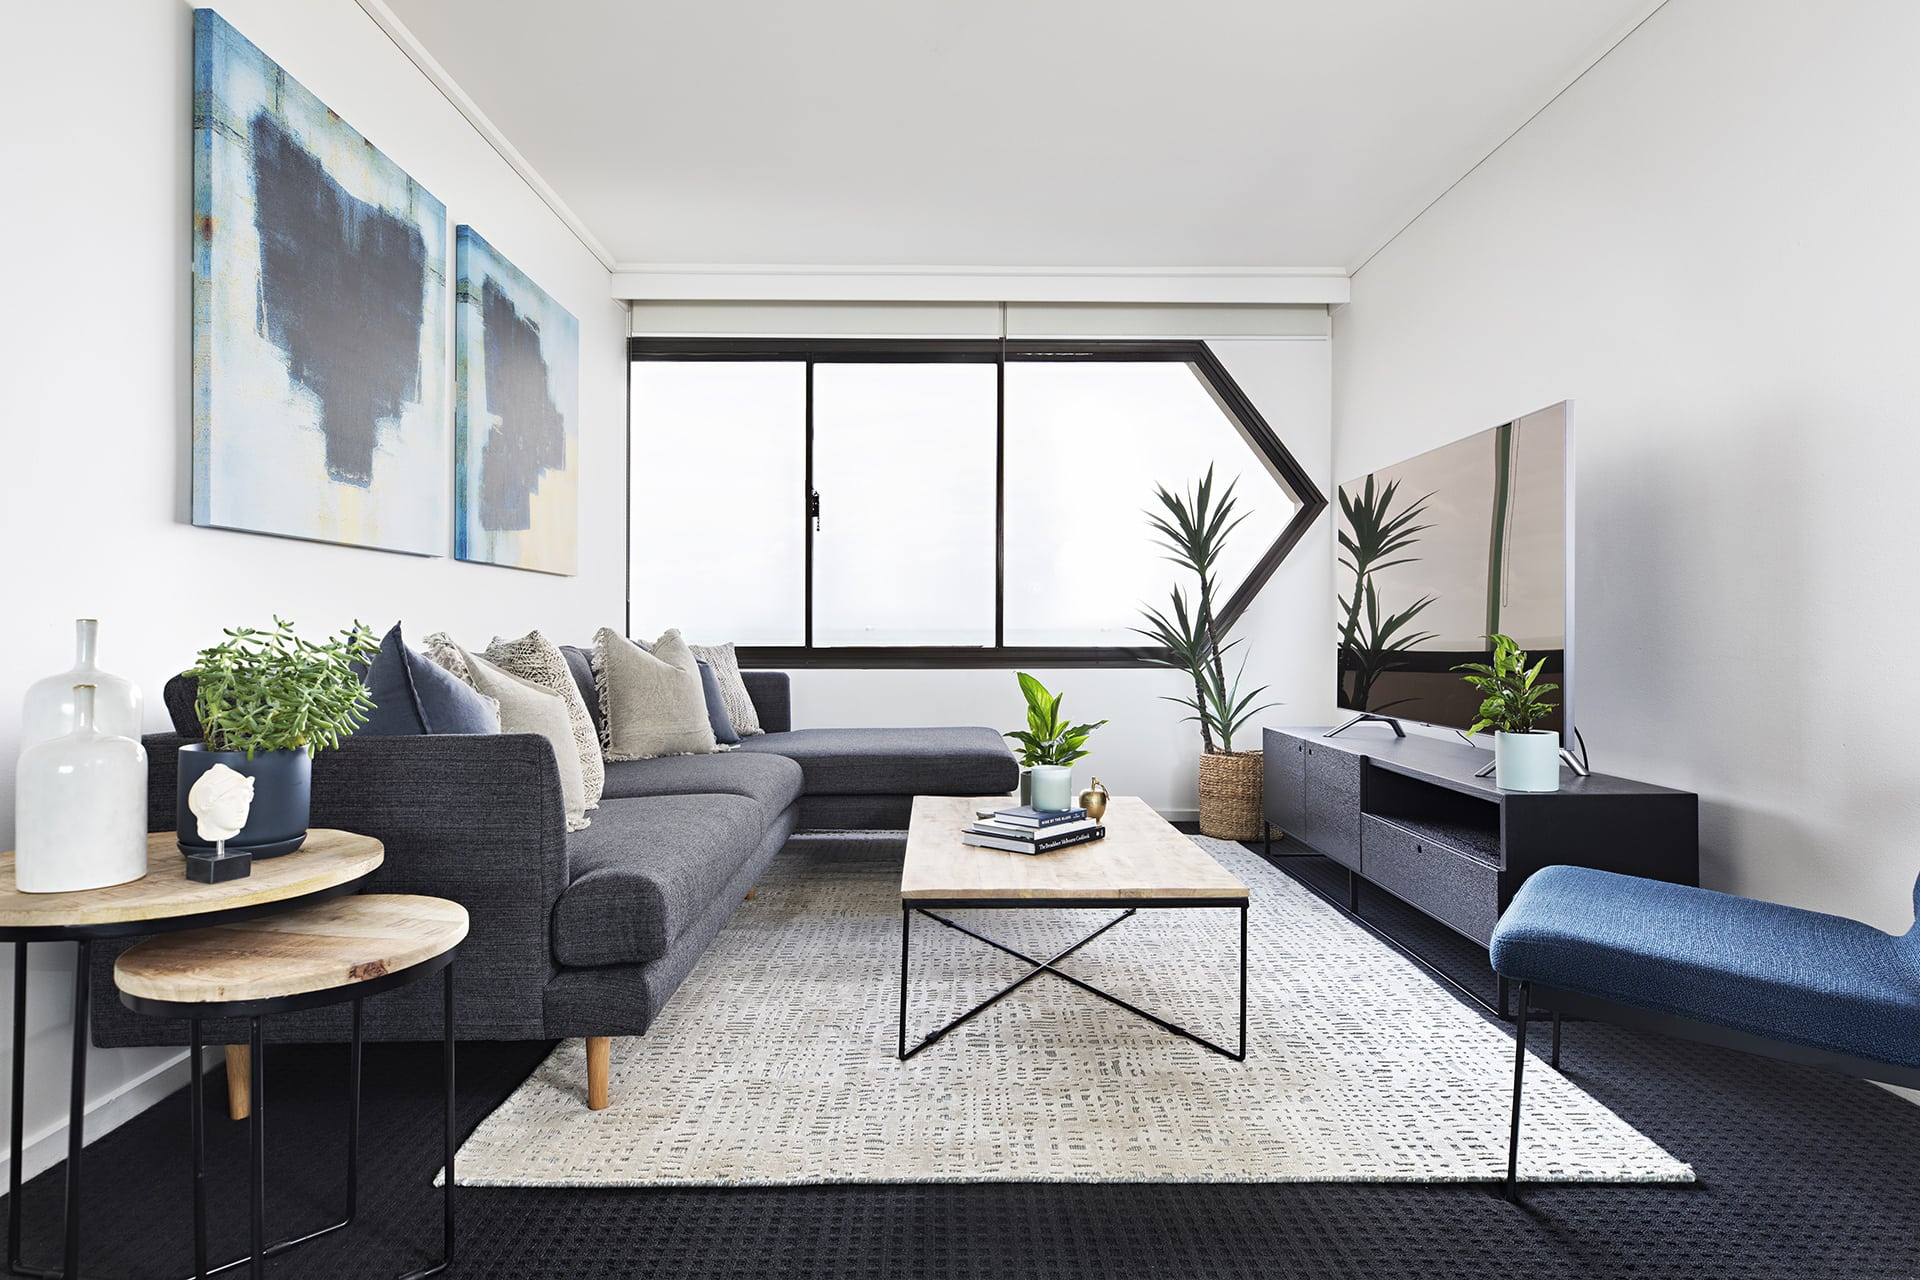 Fresh, minimalist living room in gray and blue